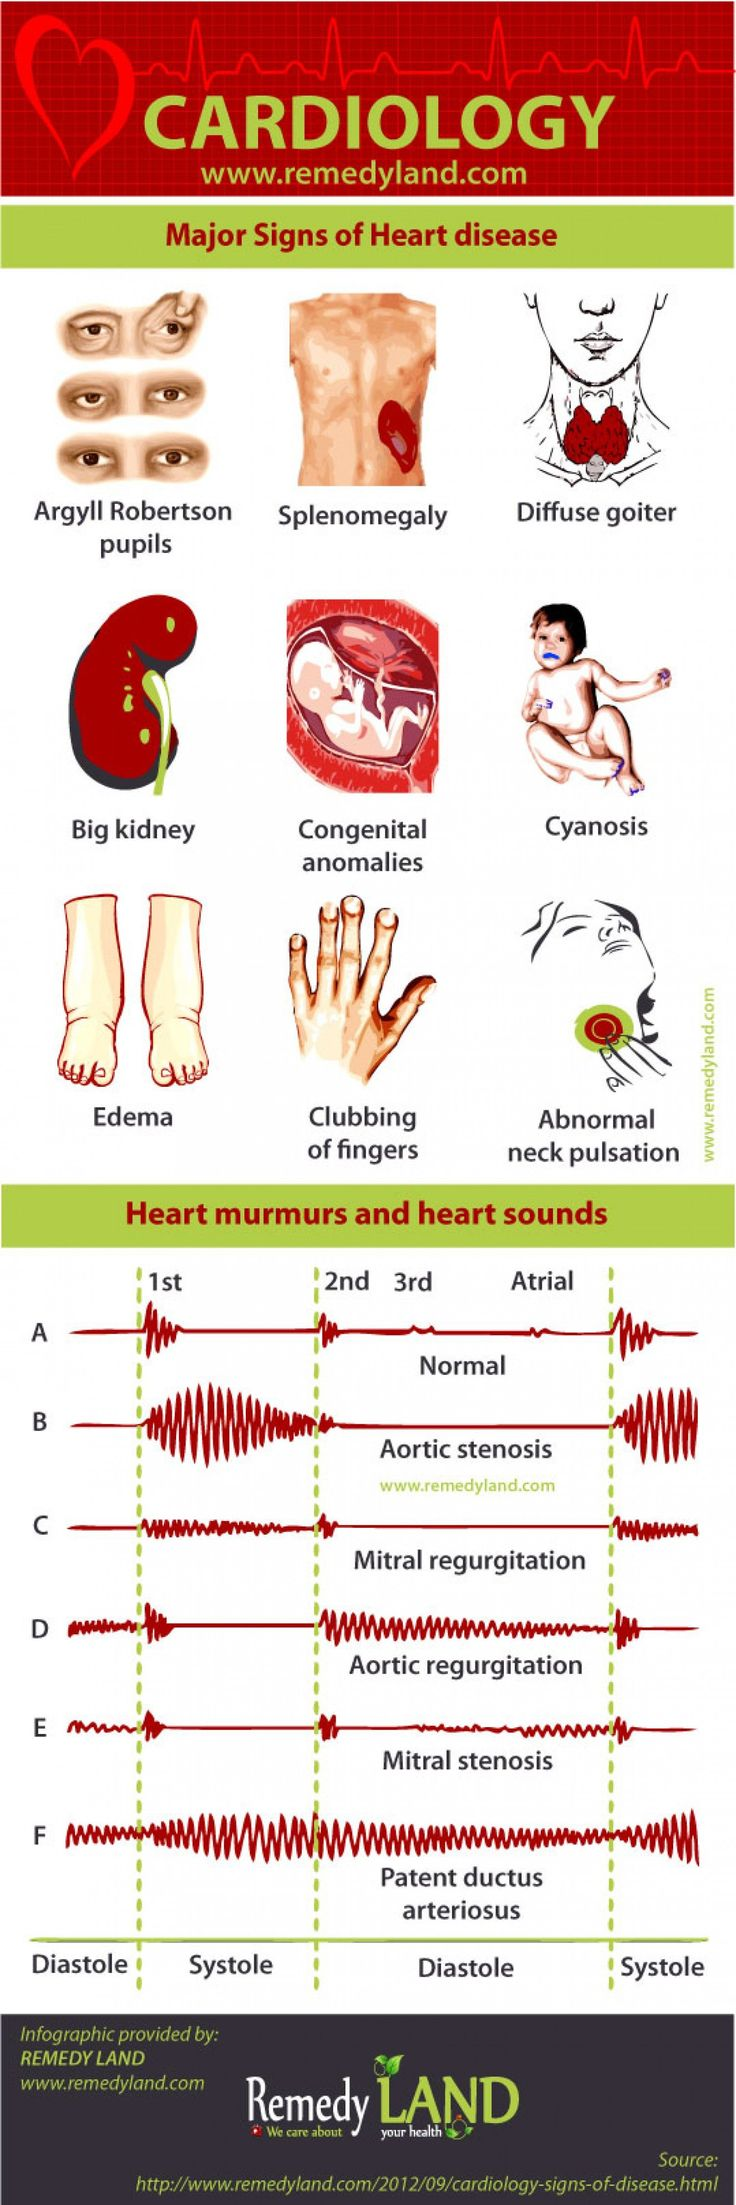 Coronary artery condition, congestive heart failure, heart attack, every form of heart problem demands different remedy but can share identical symptom.